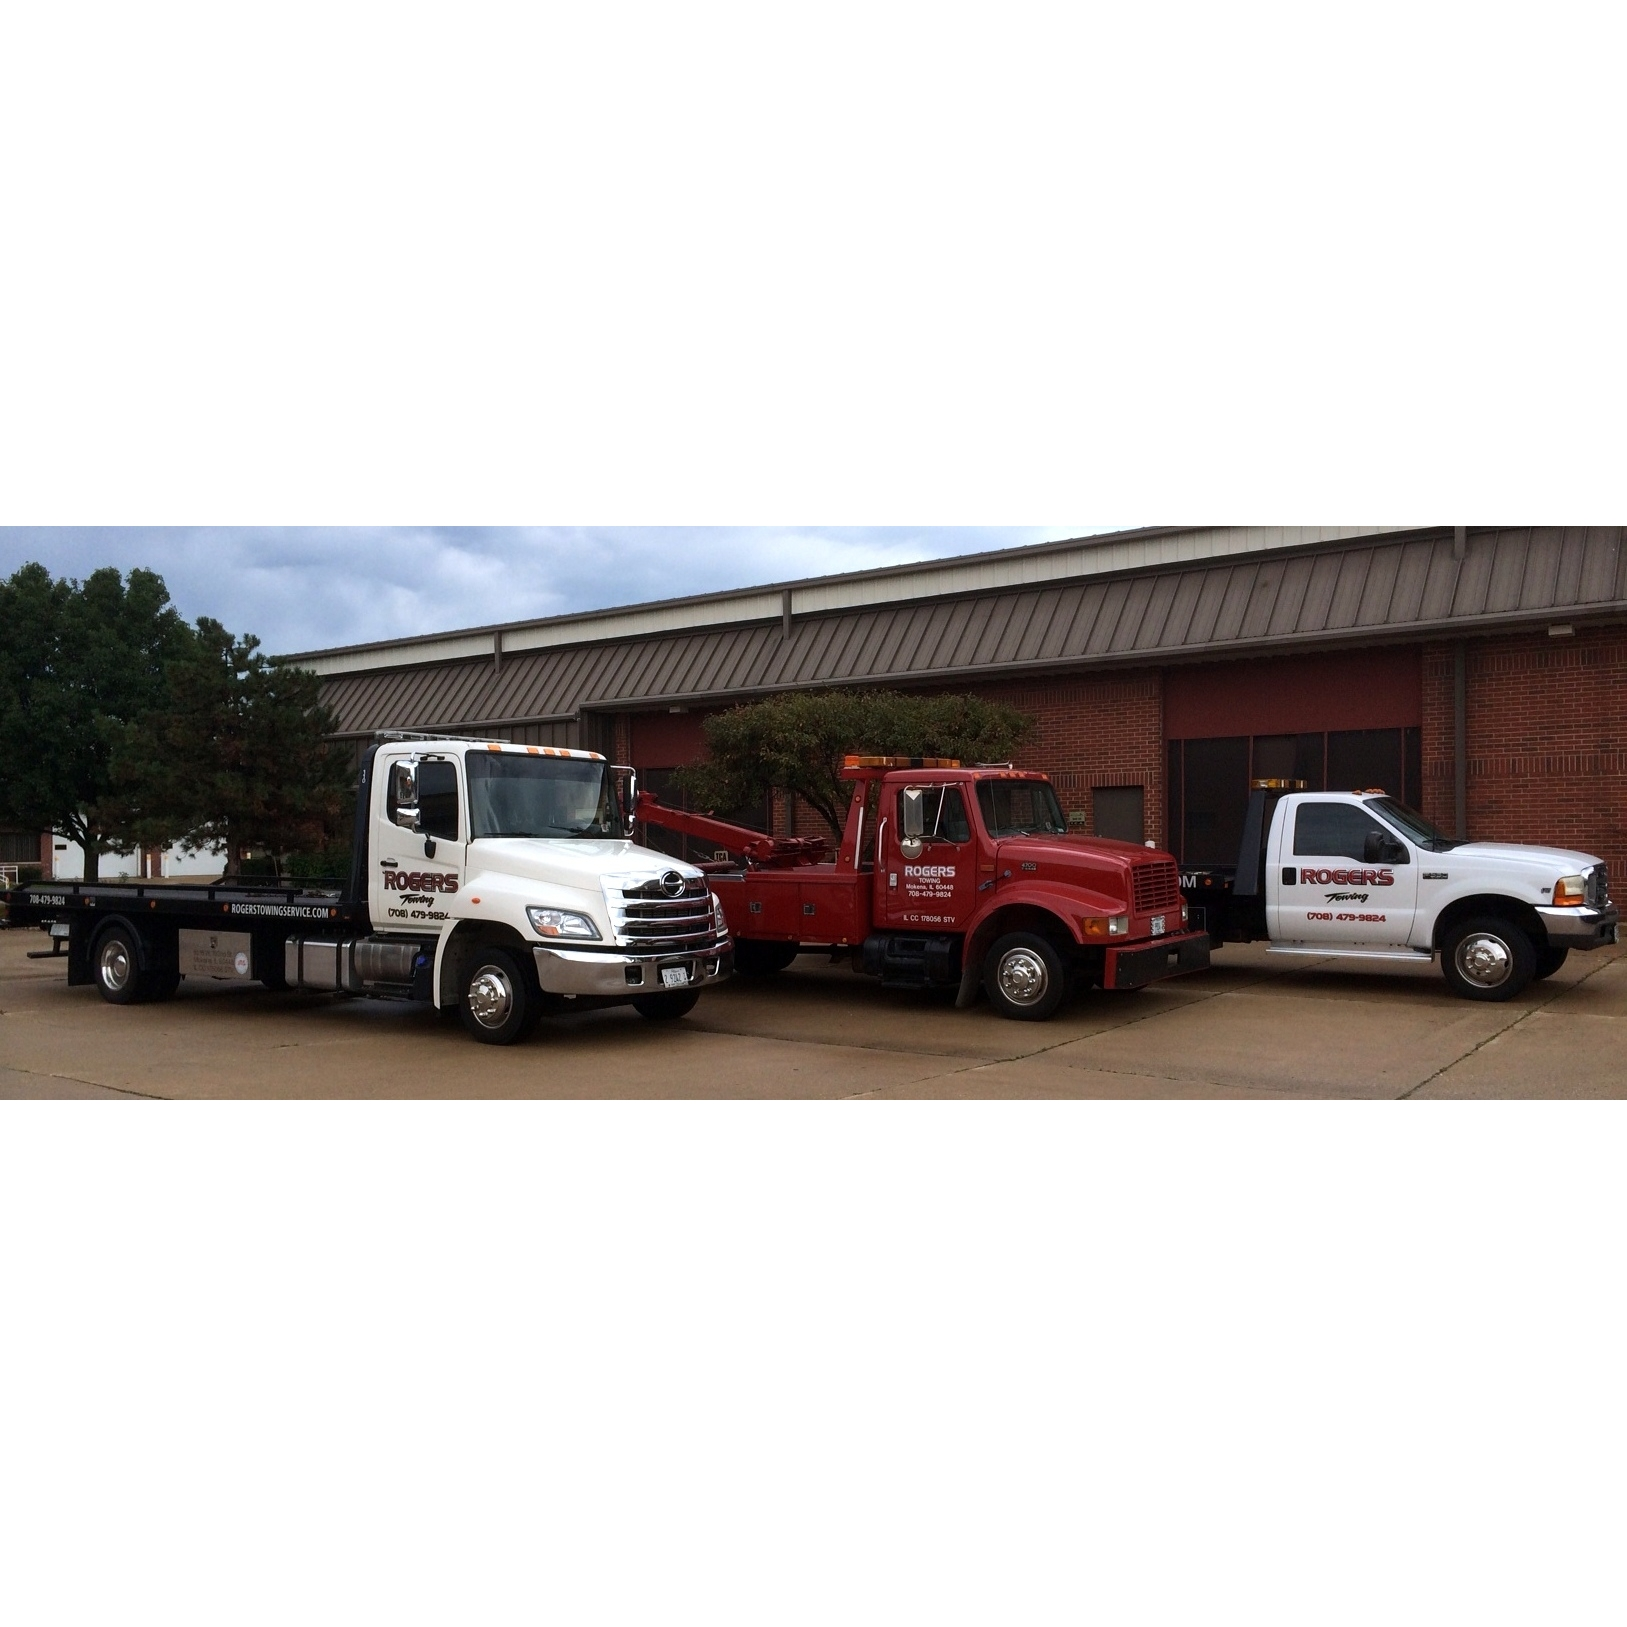 Rogers Towing